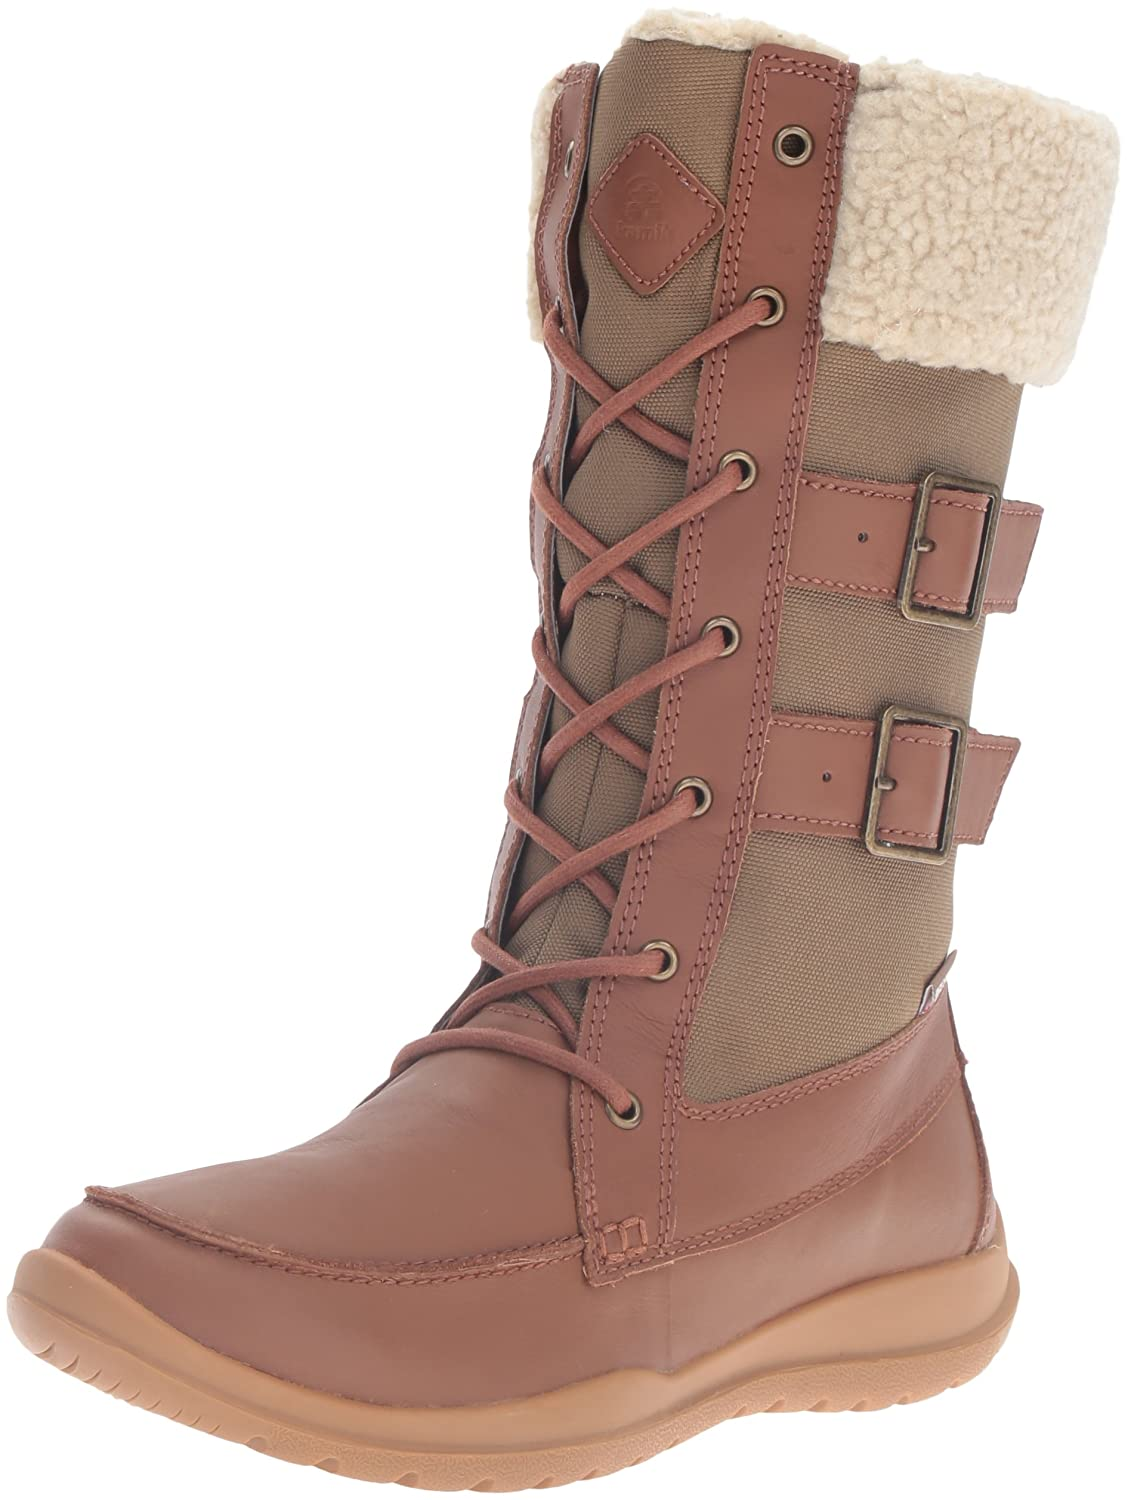 Kamik Women's Addams Snow Boot B0198WLV58 8 B(M) US|Tan